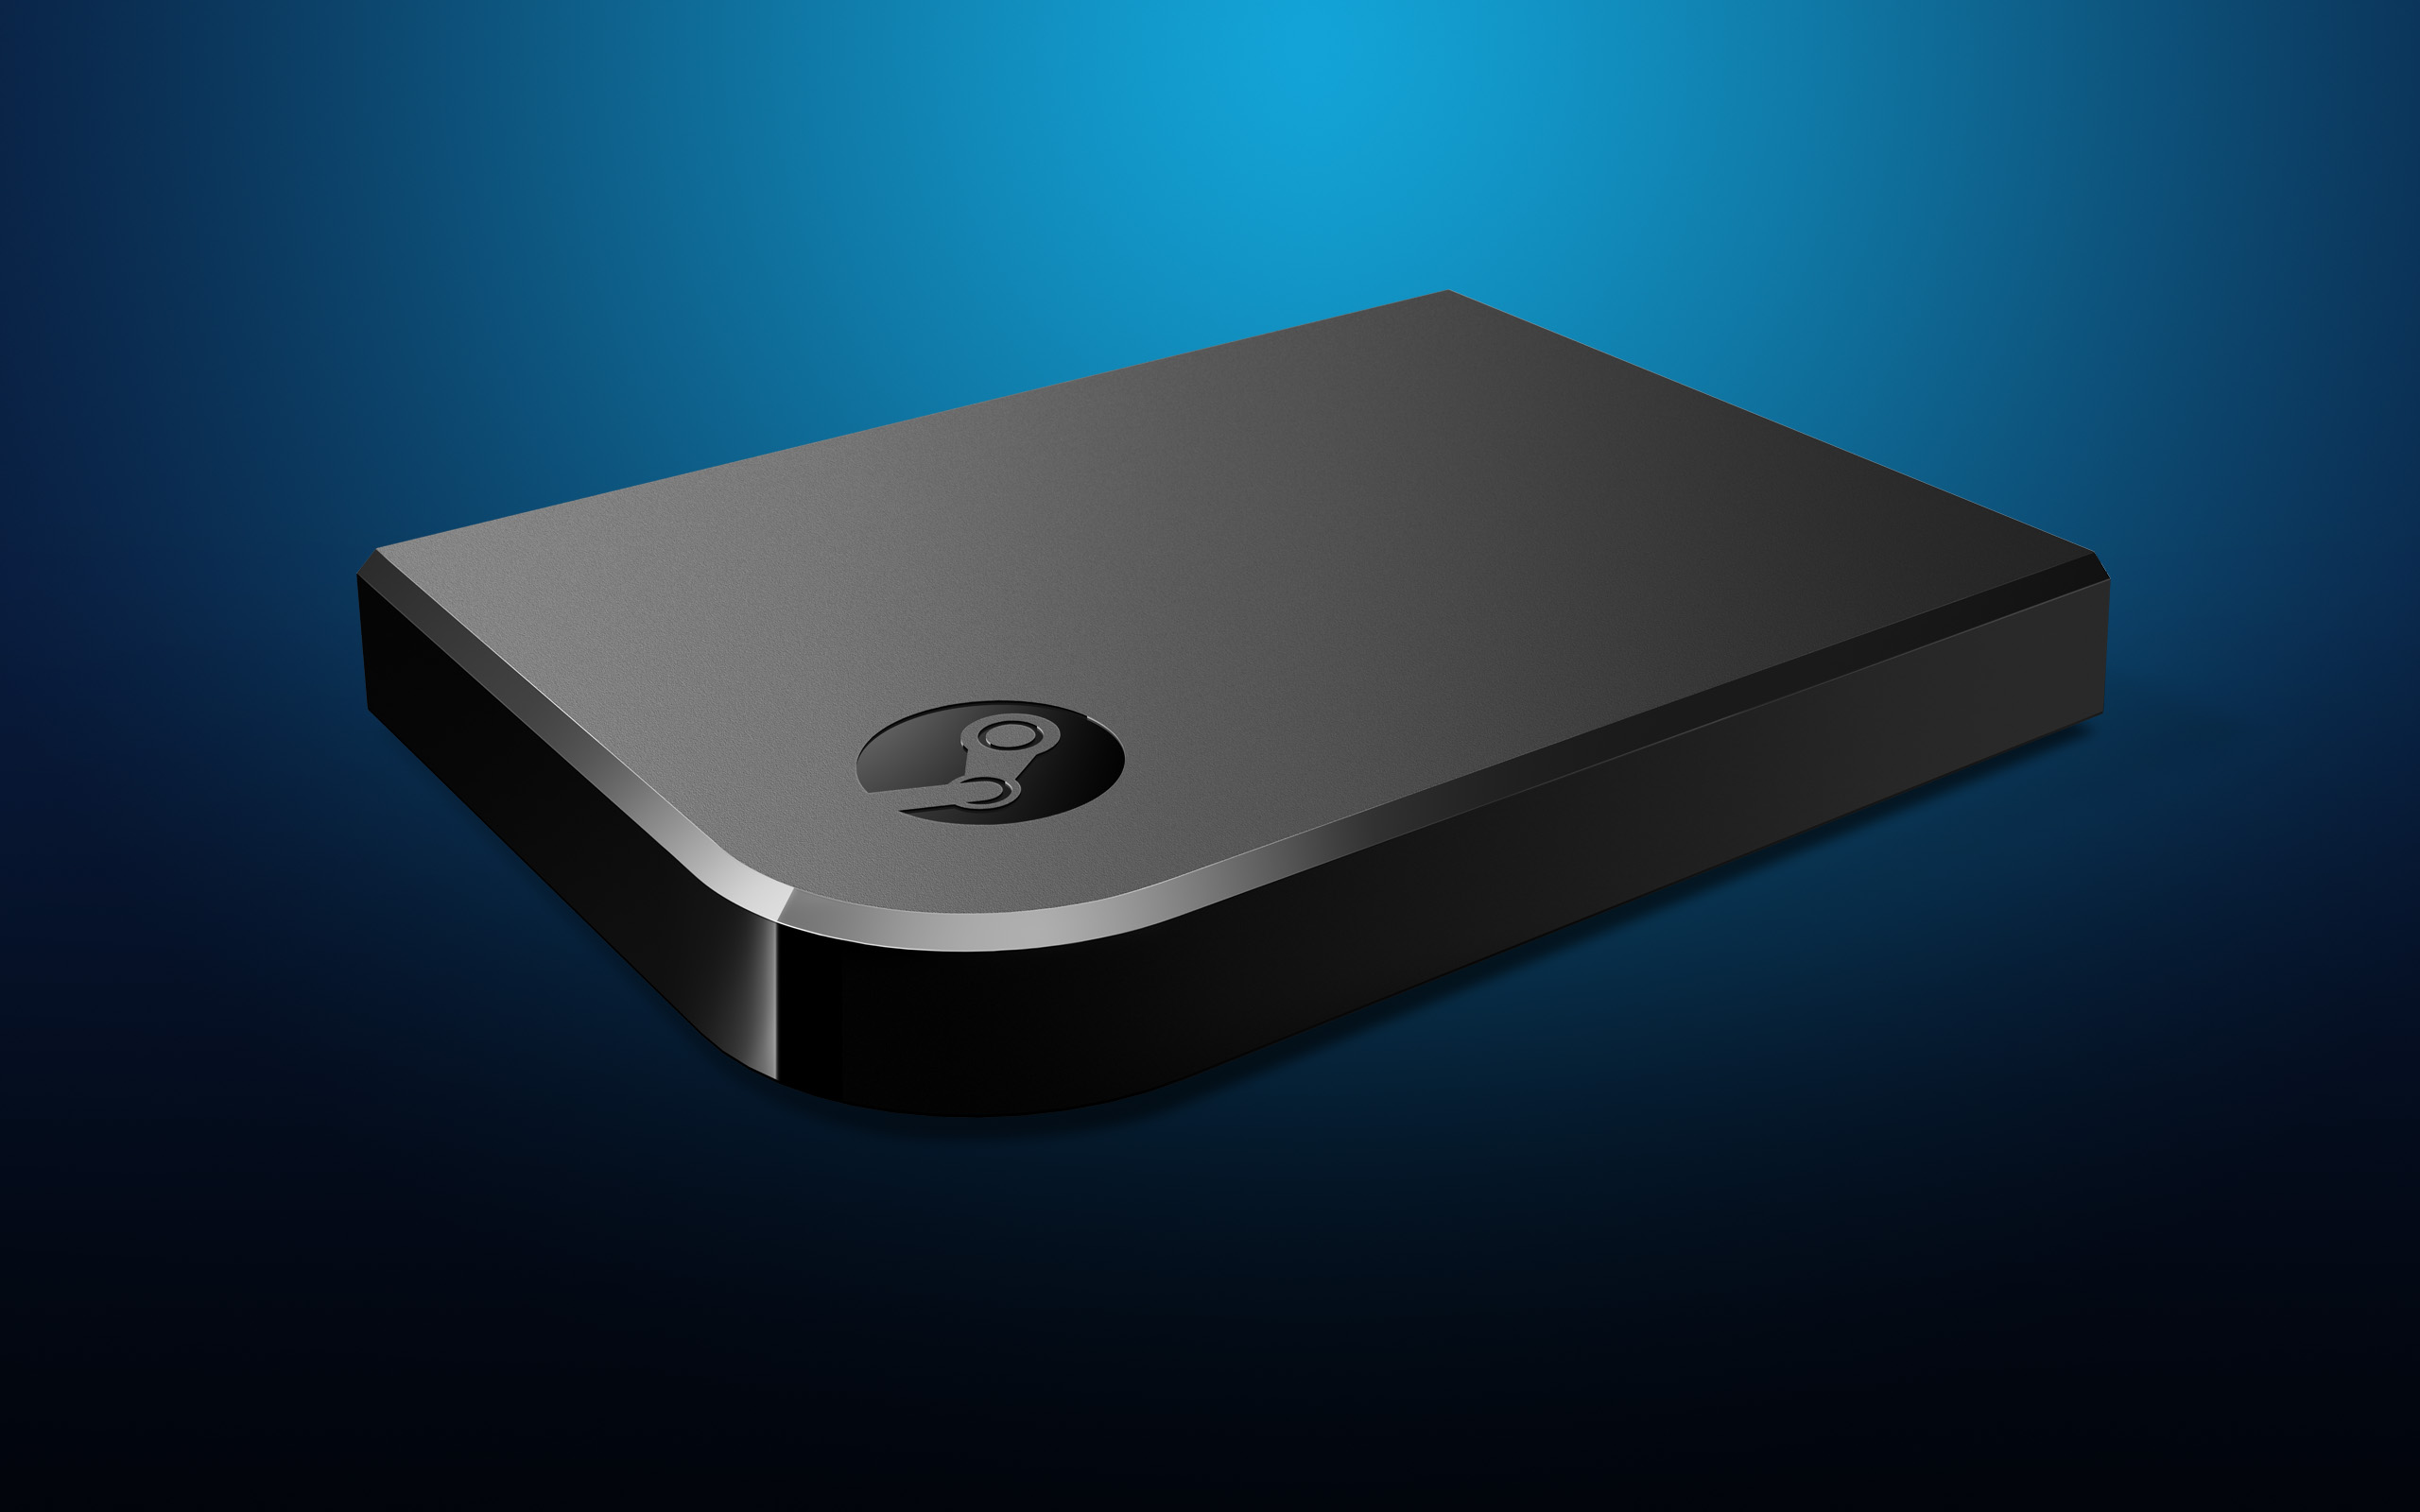 After long delay, Steam Link finally supports Apple iOS devices